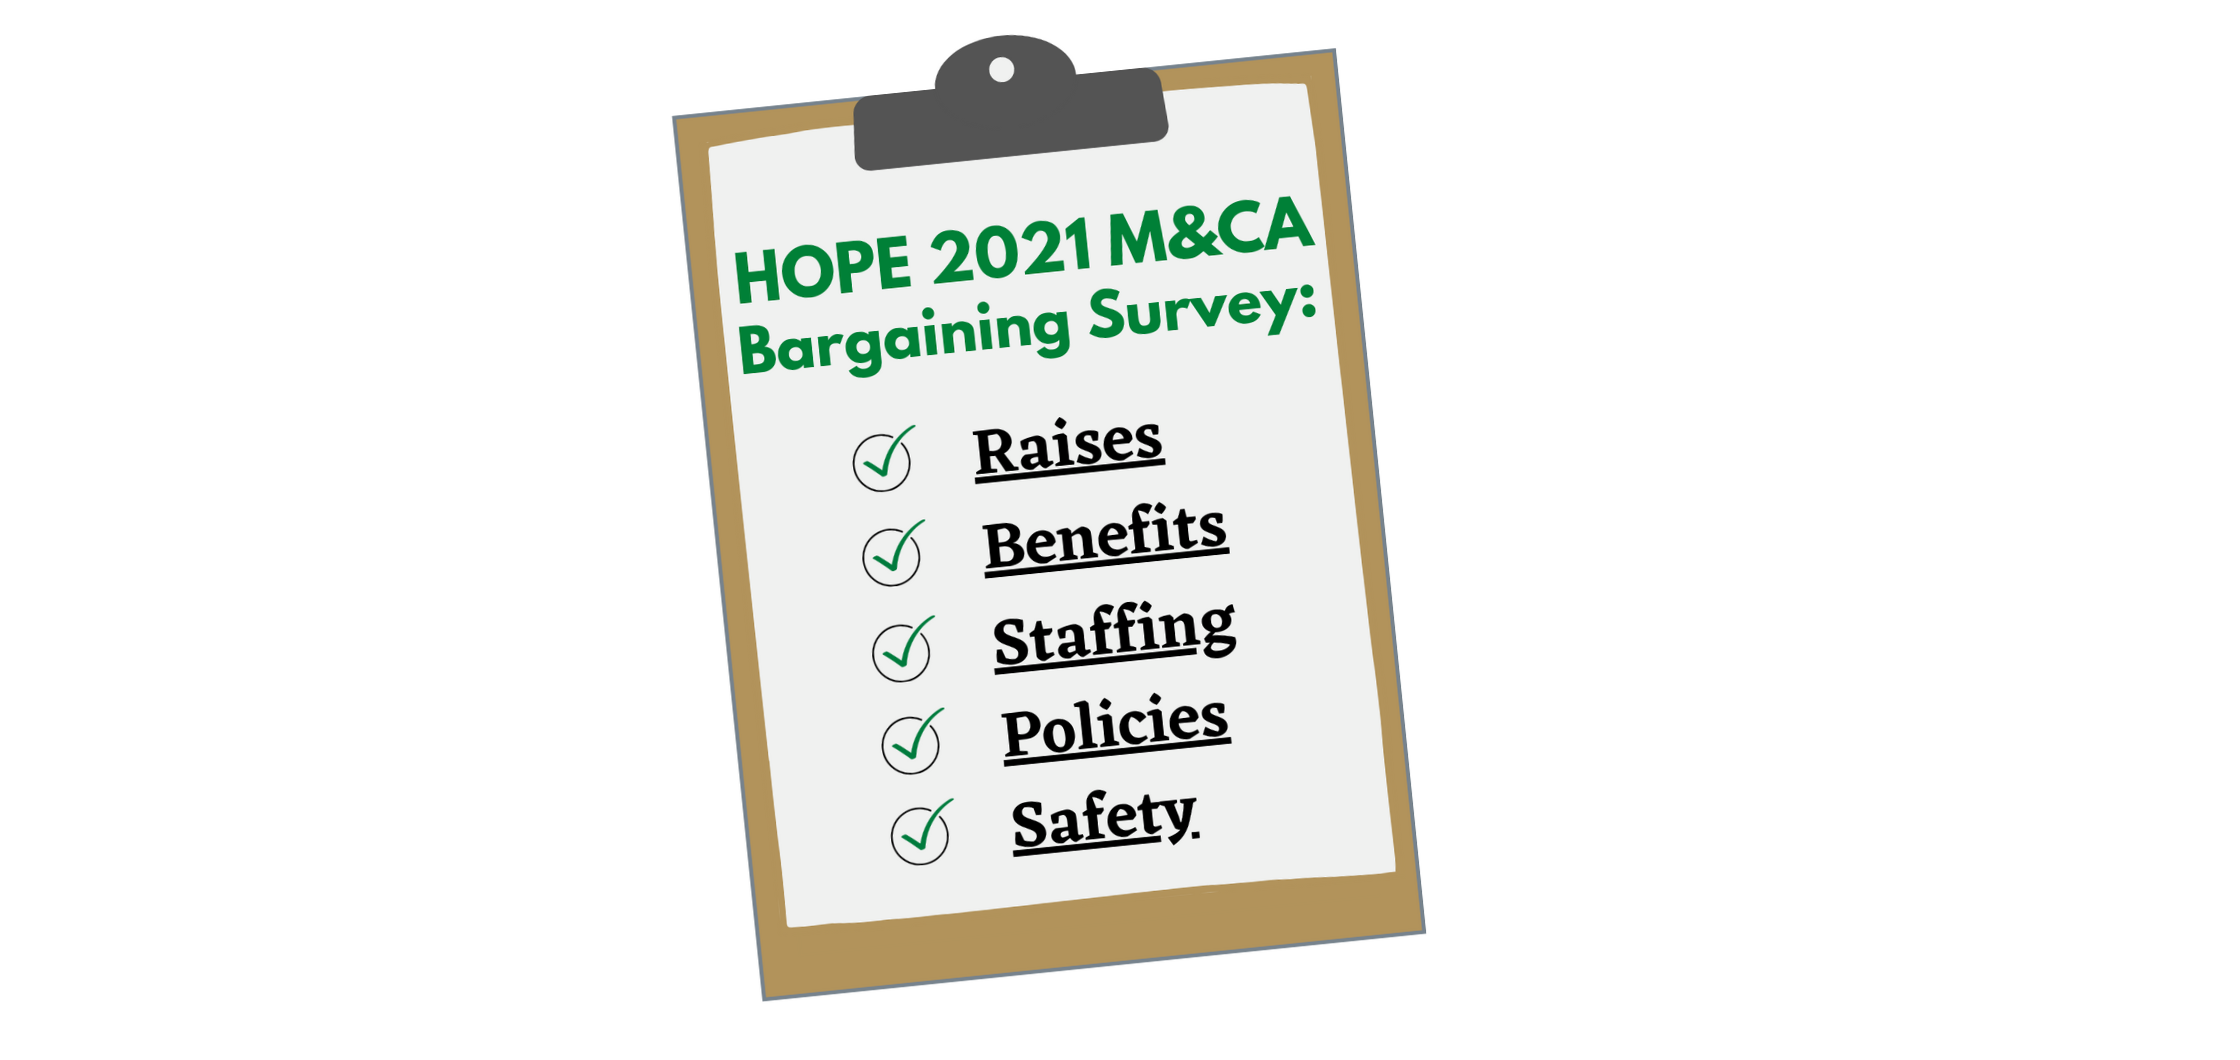 HOPE 2021 Meet and Confer Bargaining Survey